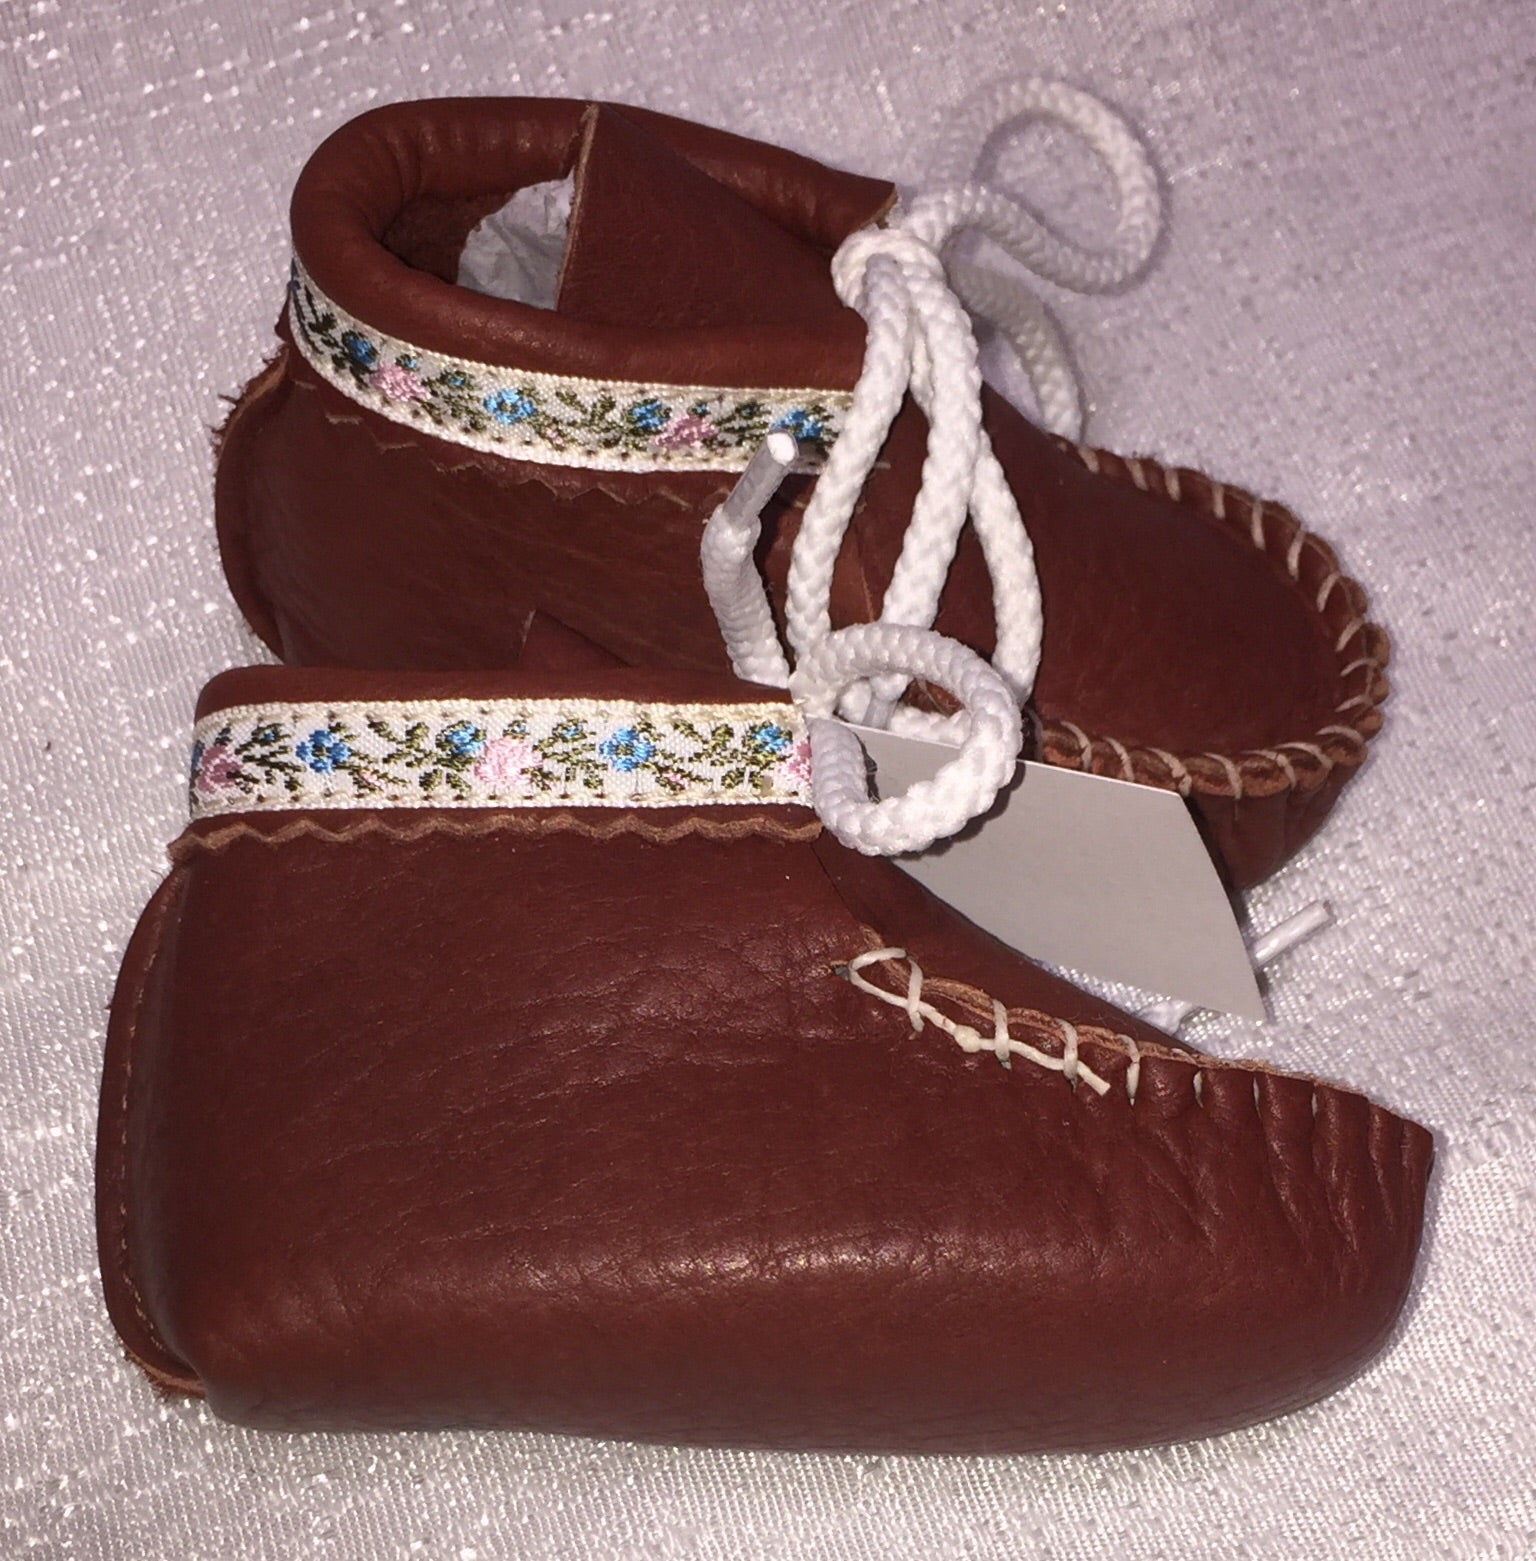 Footskins - Infant and Toddler Bison leather Booties  $27.50- to $32.50